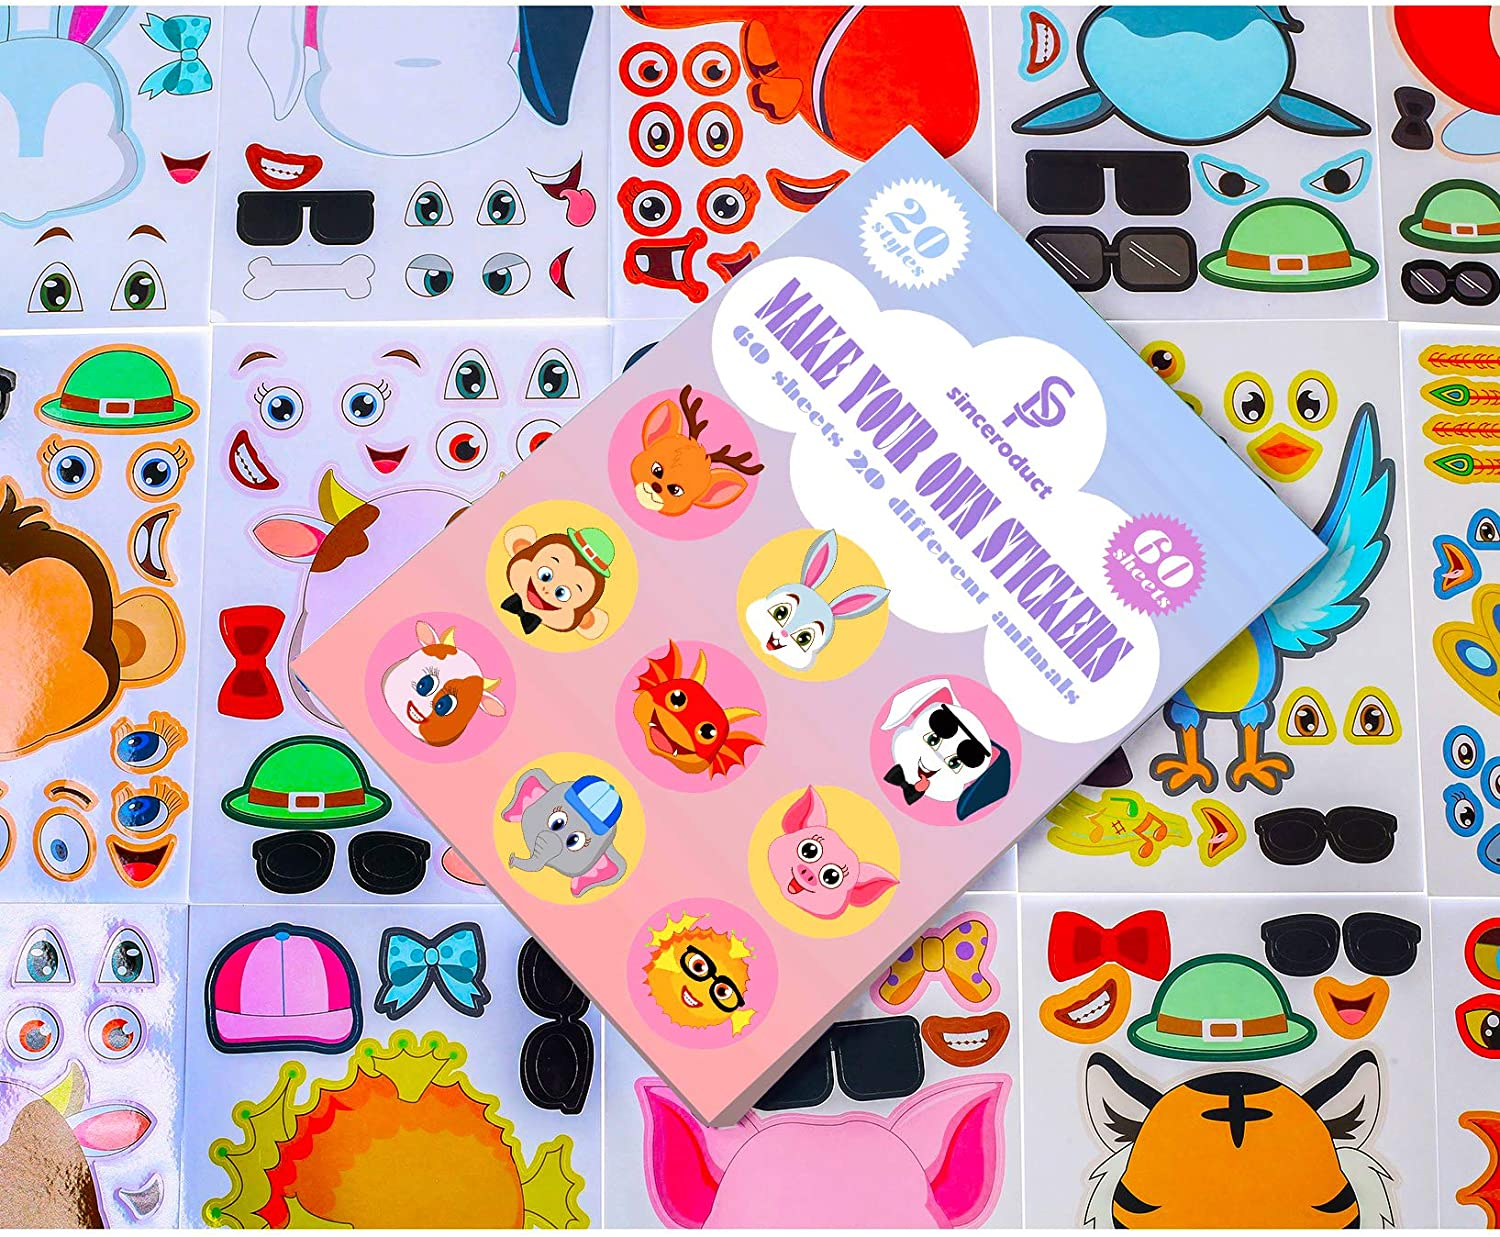 Sinceroduct Make Your Own Stickers of 60 Pack Party Favor Make an Animal Face